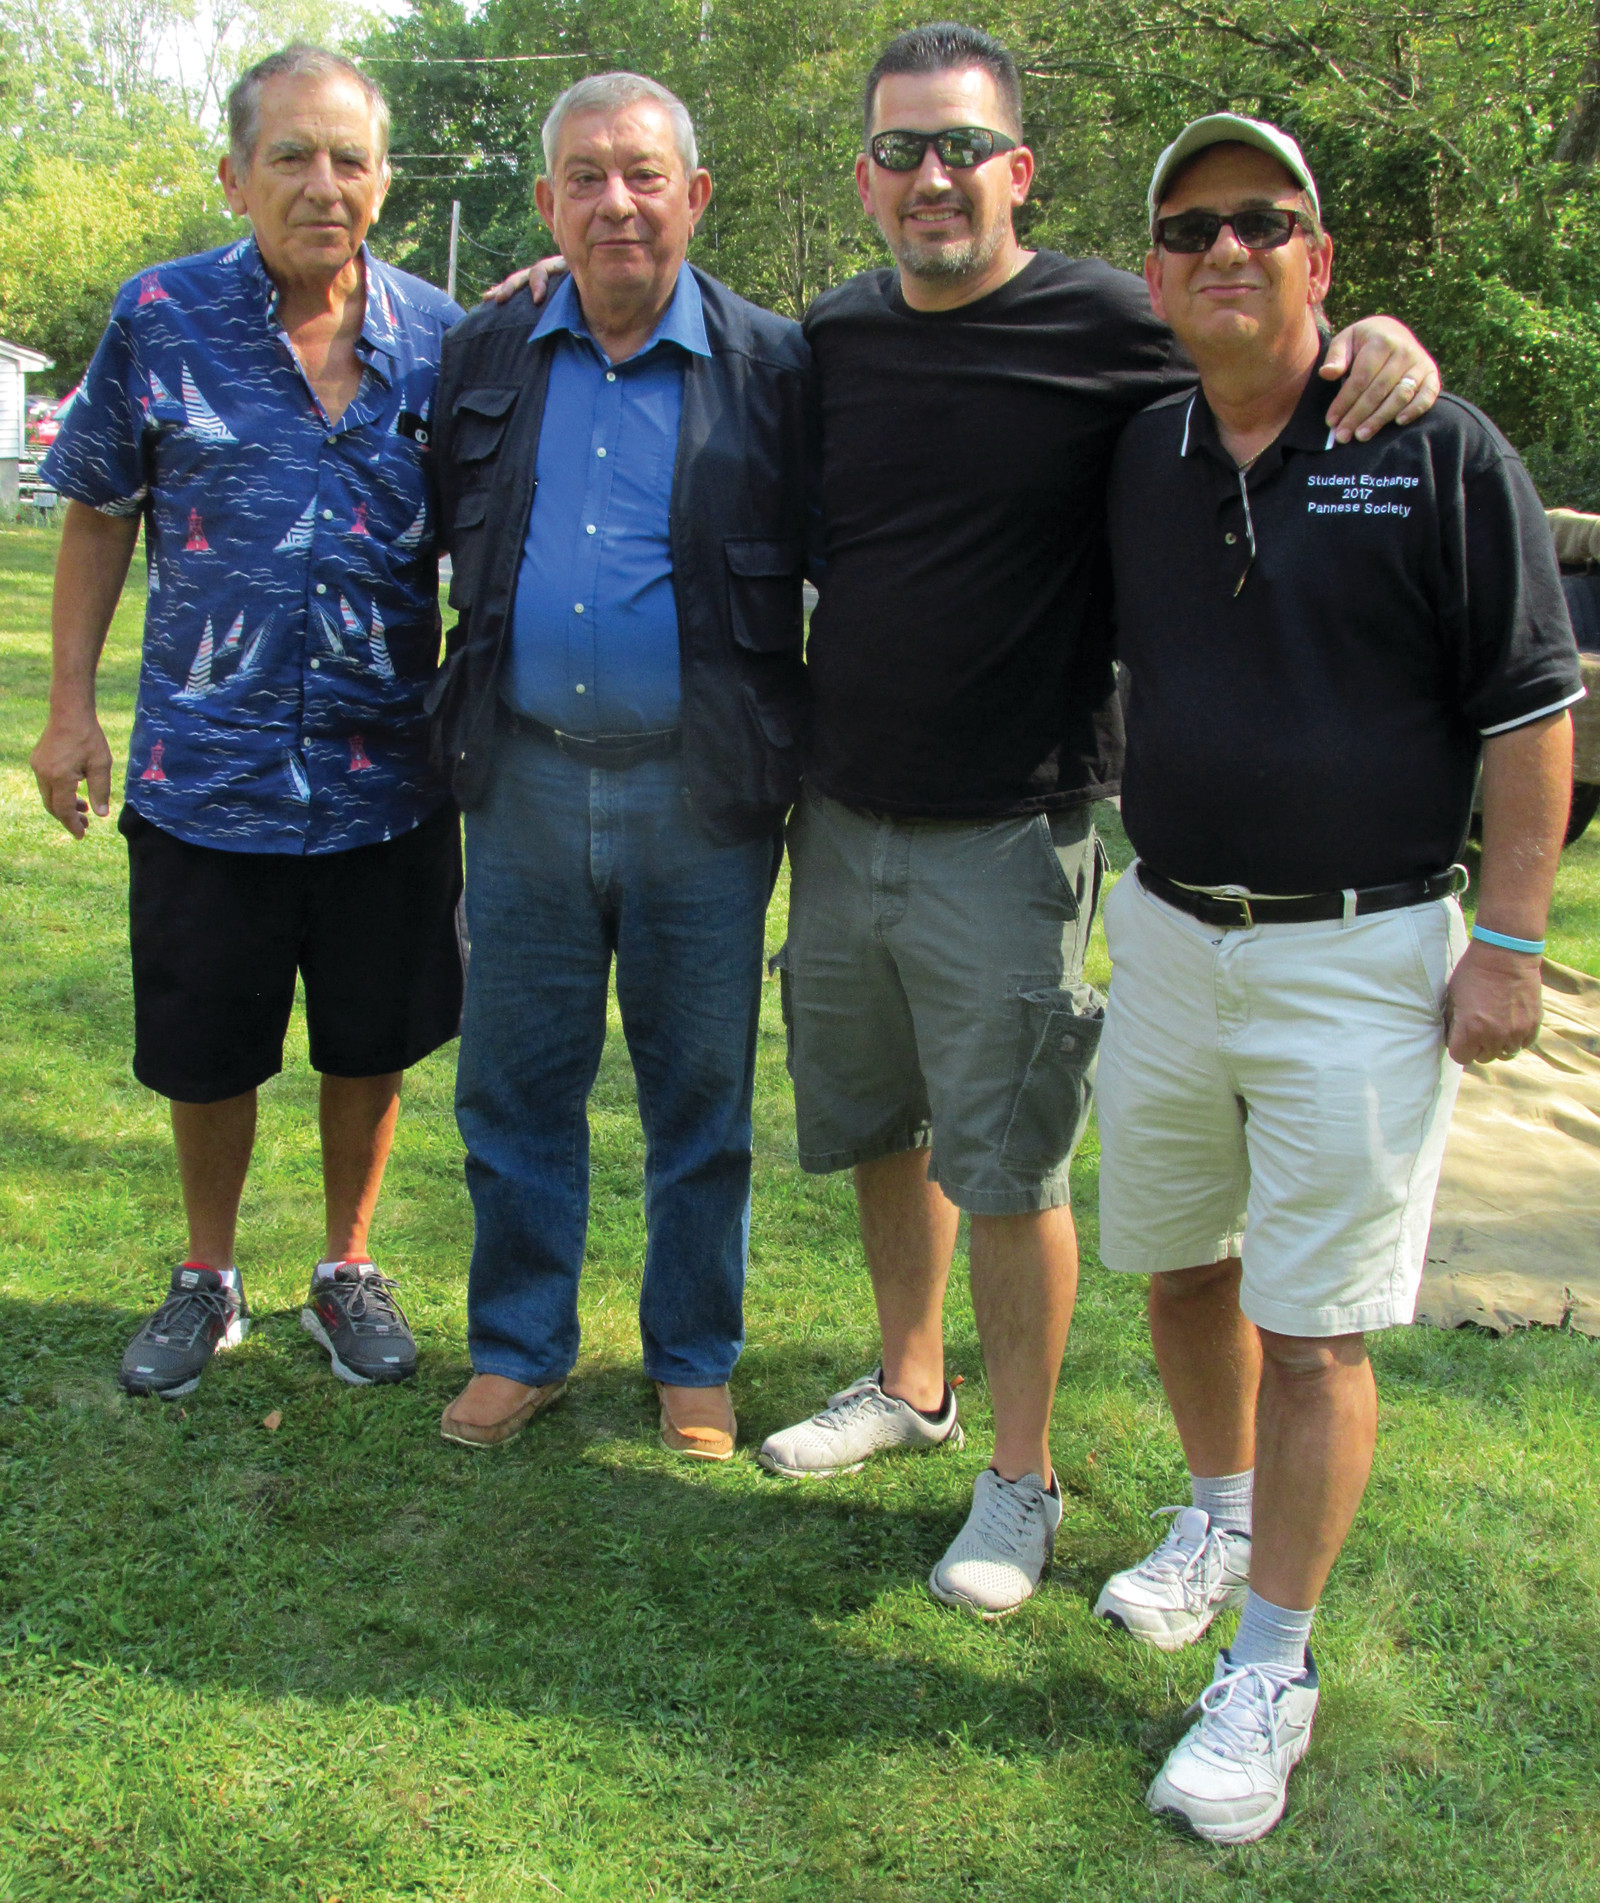 PANNESE PEOPLE: Lou Spremulli (right), Vice President of Pannese Society, is joined by fellow members Arthur and David Venditelli who welcome Renato Mansolillo from Panni Foggia Italy to Monday's special outing in Johnston.